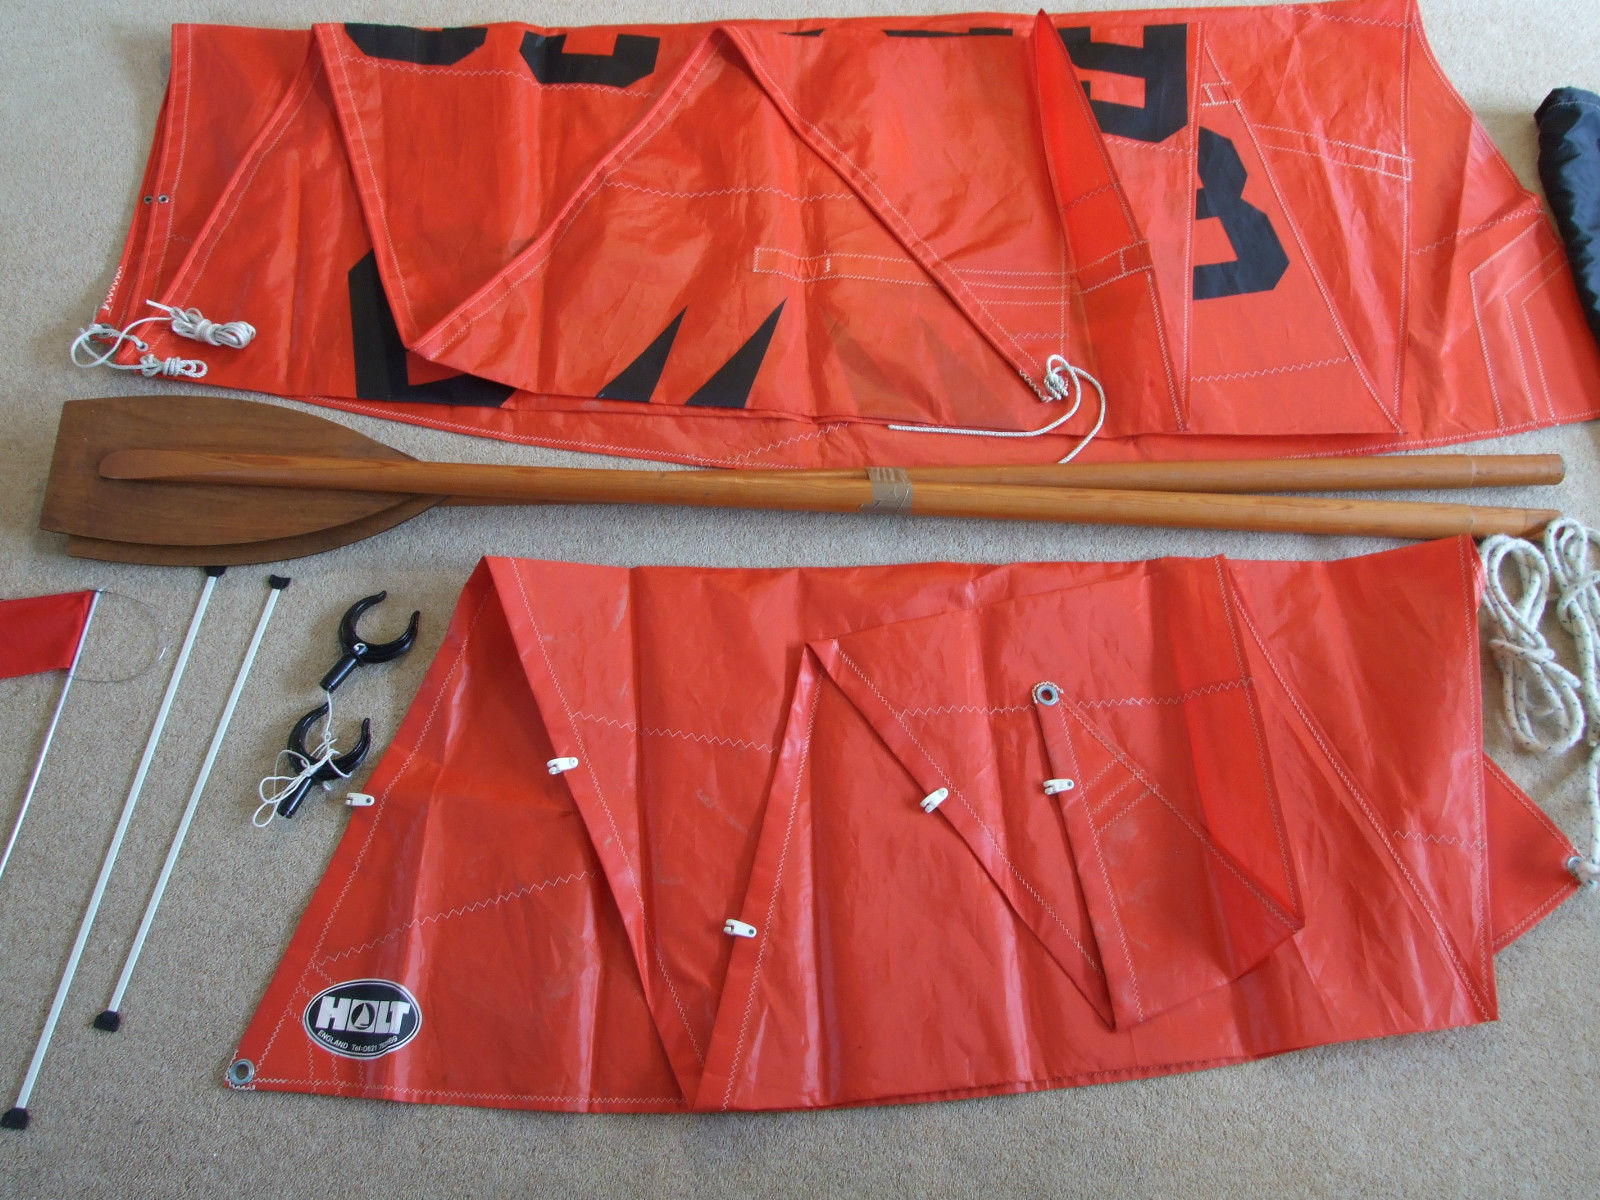 A pair of Mirror oars plus some rowlocks, folded sails, sail battens and a burgee laid out on a carpet